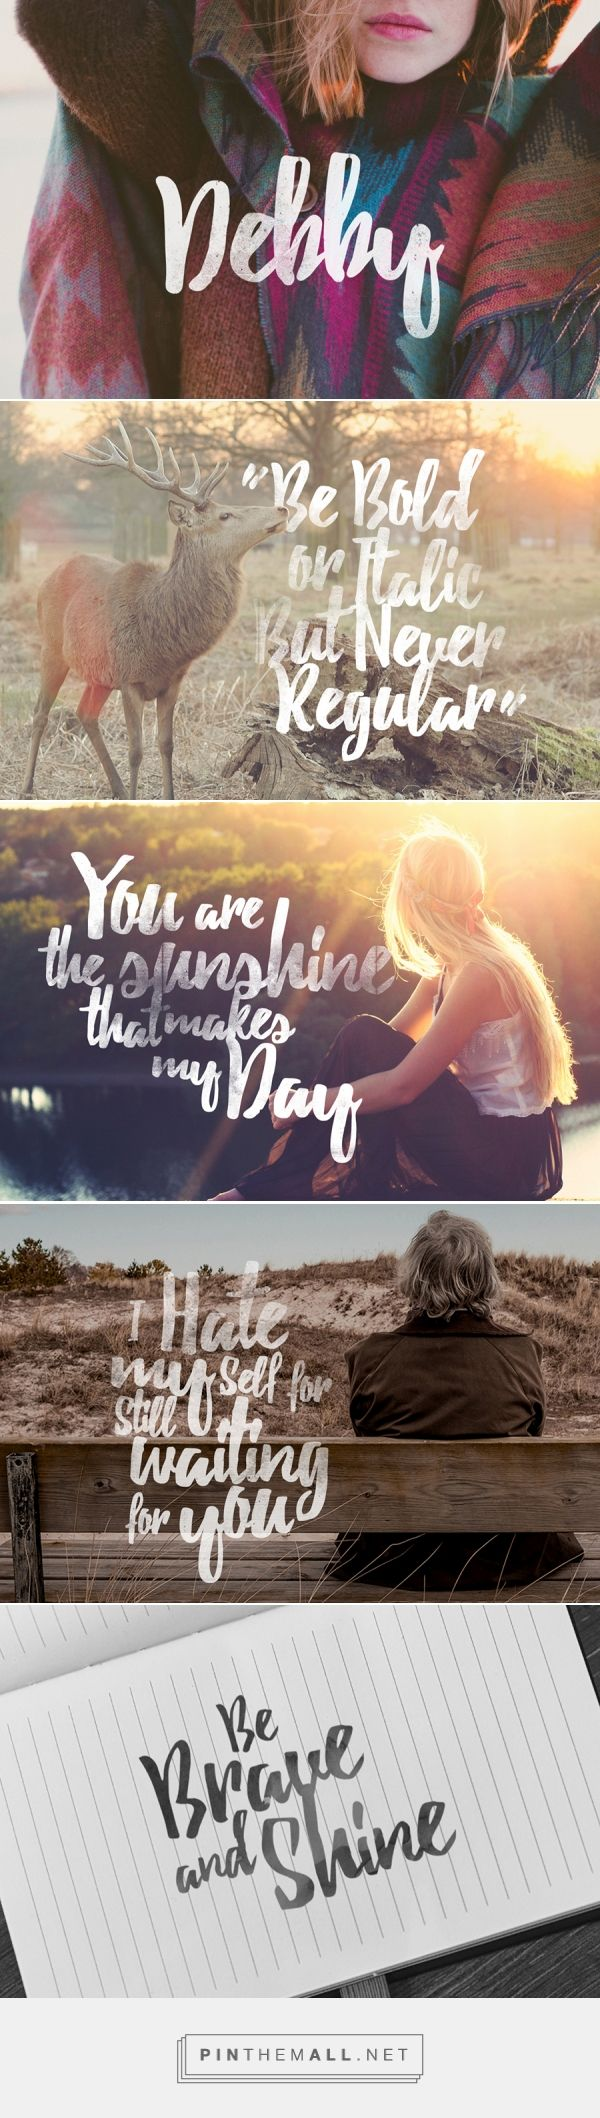 Debby Free Font — Free Design Resources - created via http://pinthemall.net